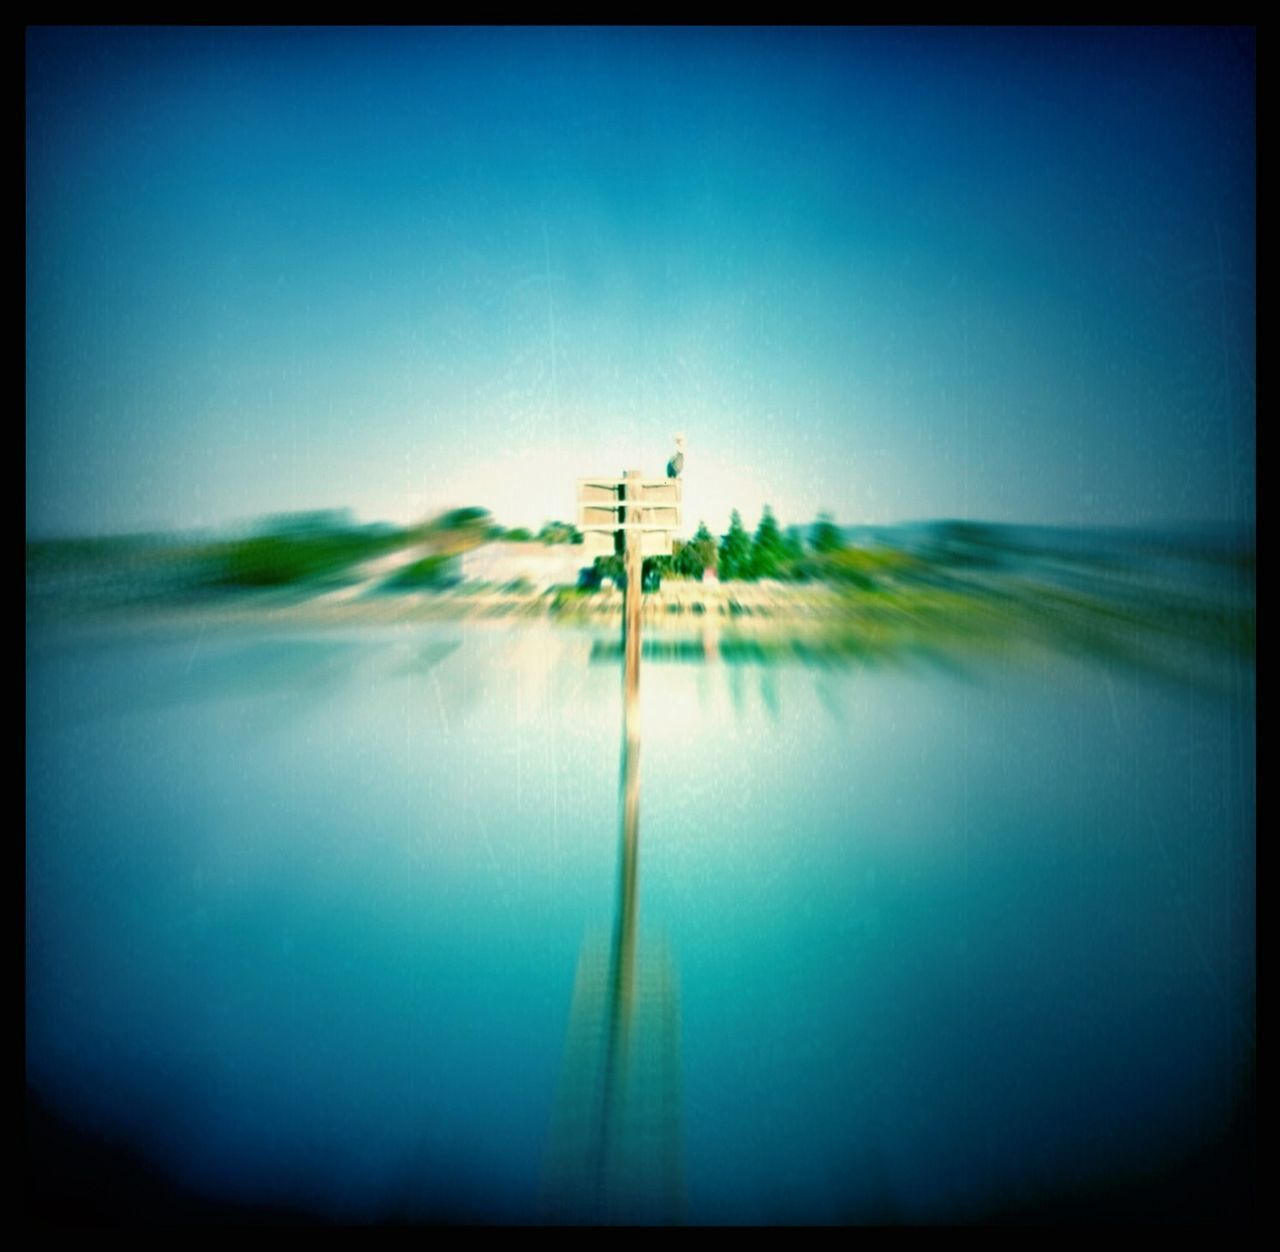 Lake View In Blurred Motion